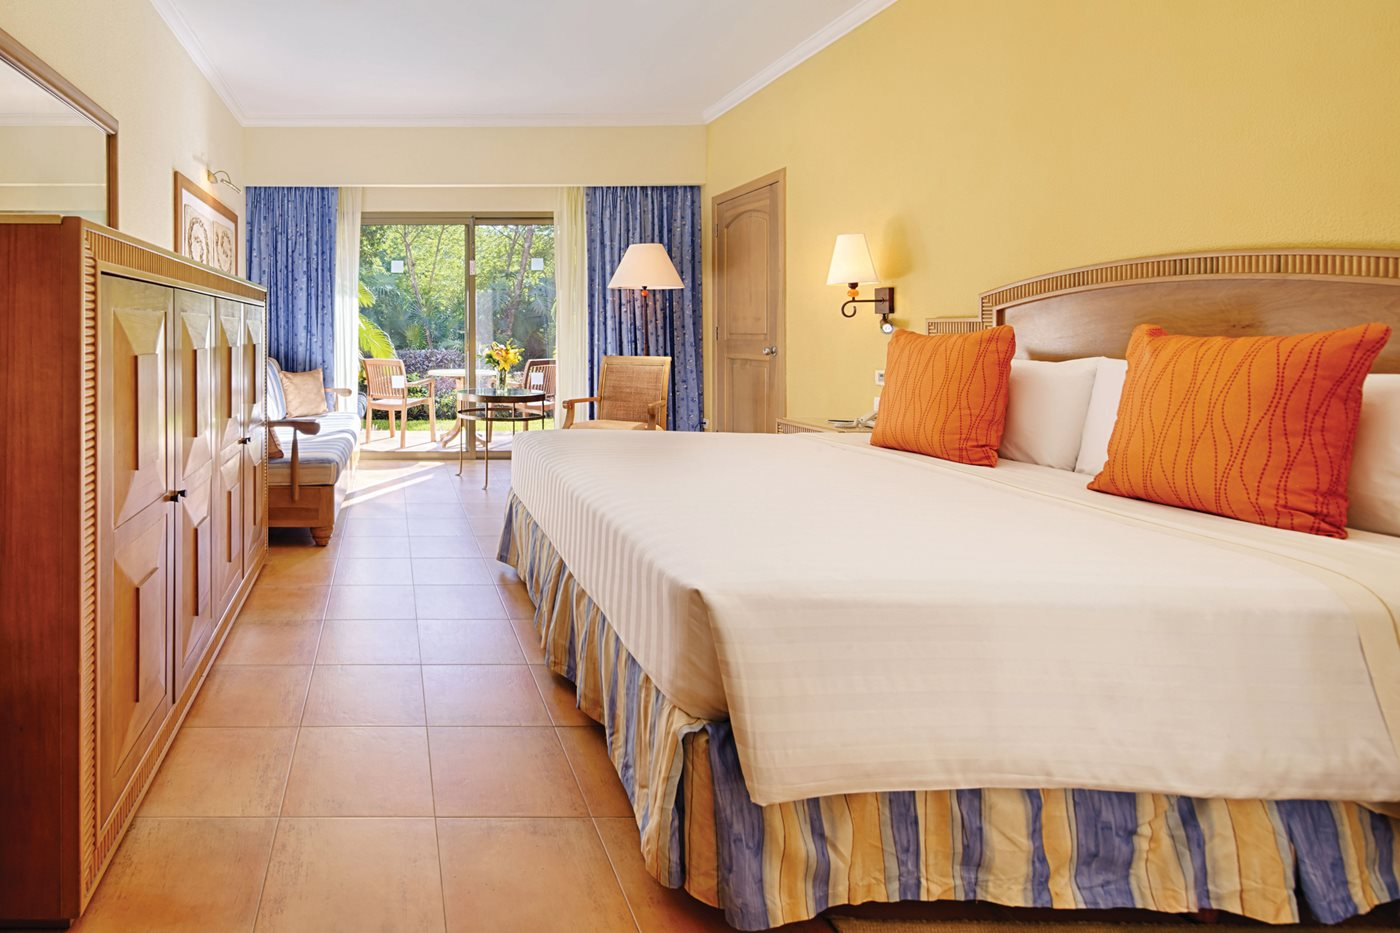 Superior Room Prestige Class    TORONTO - CANCUN 7 NIGHT PACKAGE    DOUBLE OCCUPANCY:   $1649    CAD PER PERSON   CHILDREN AGES 2-12:   $1149    CAD (WHEN SHARING ROOM WITH TWO ADULTS)